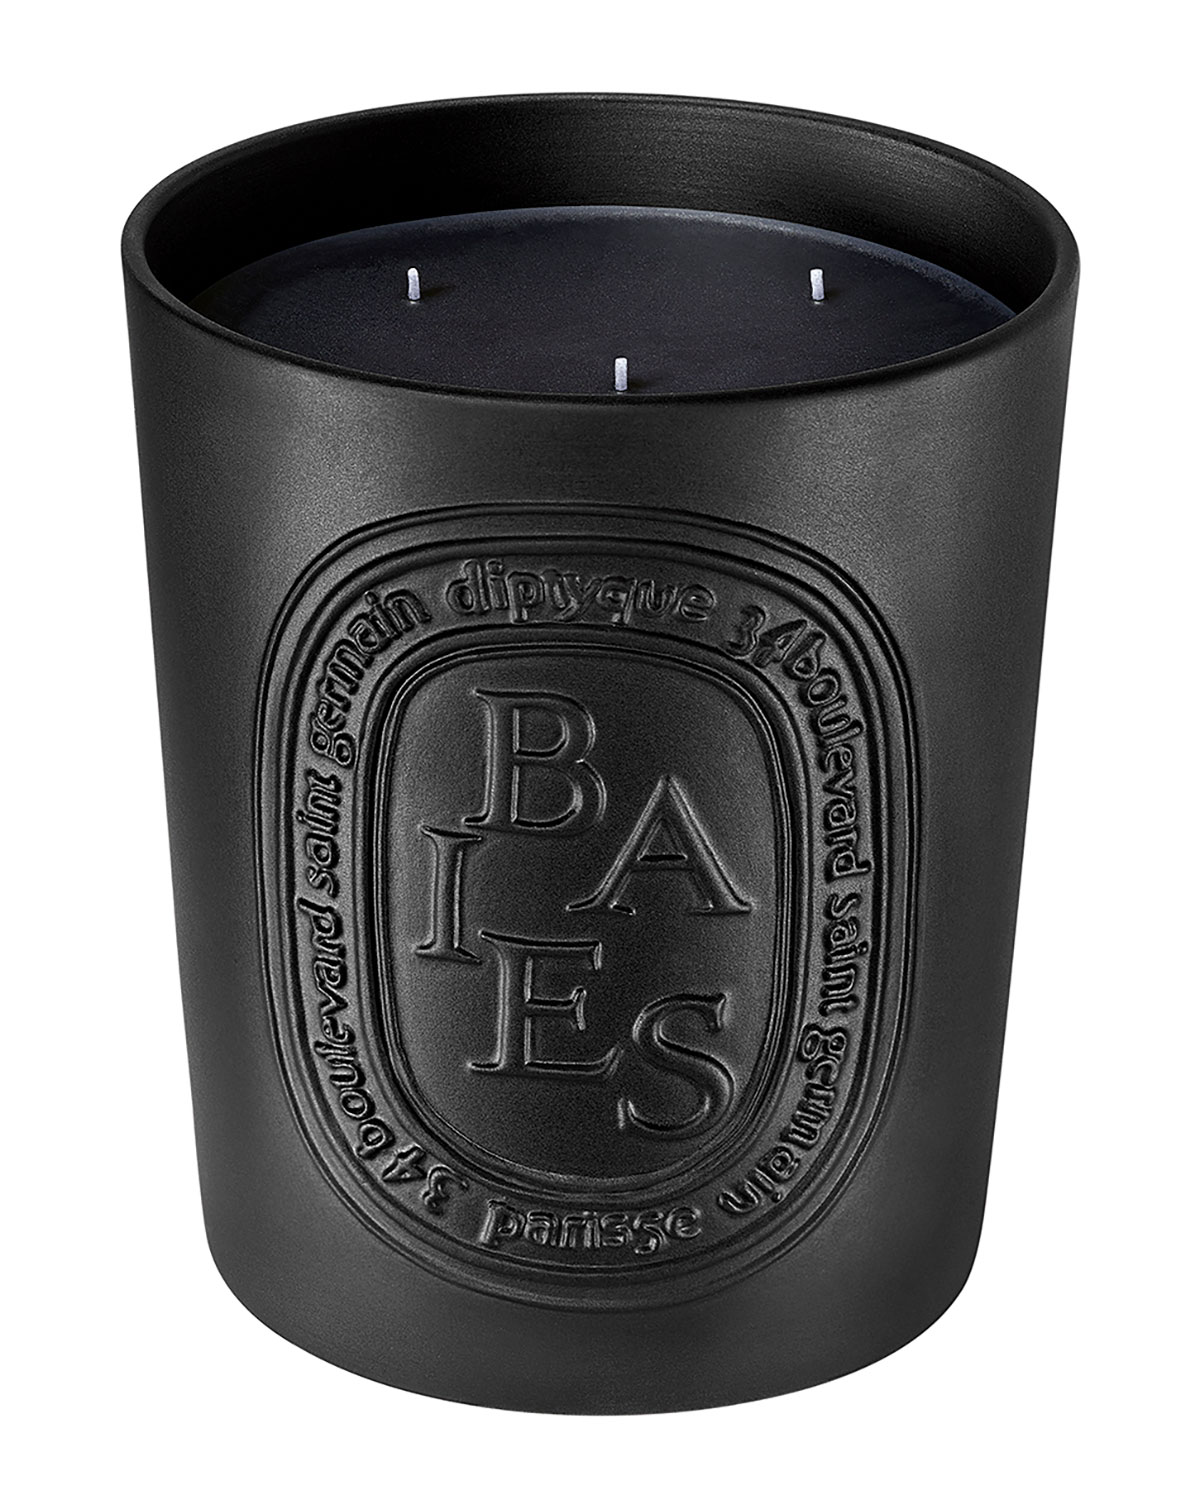 Diptyque Baies 600g 3 - wick Candle